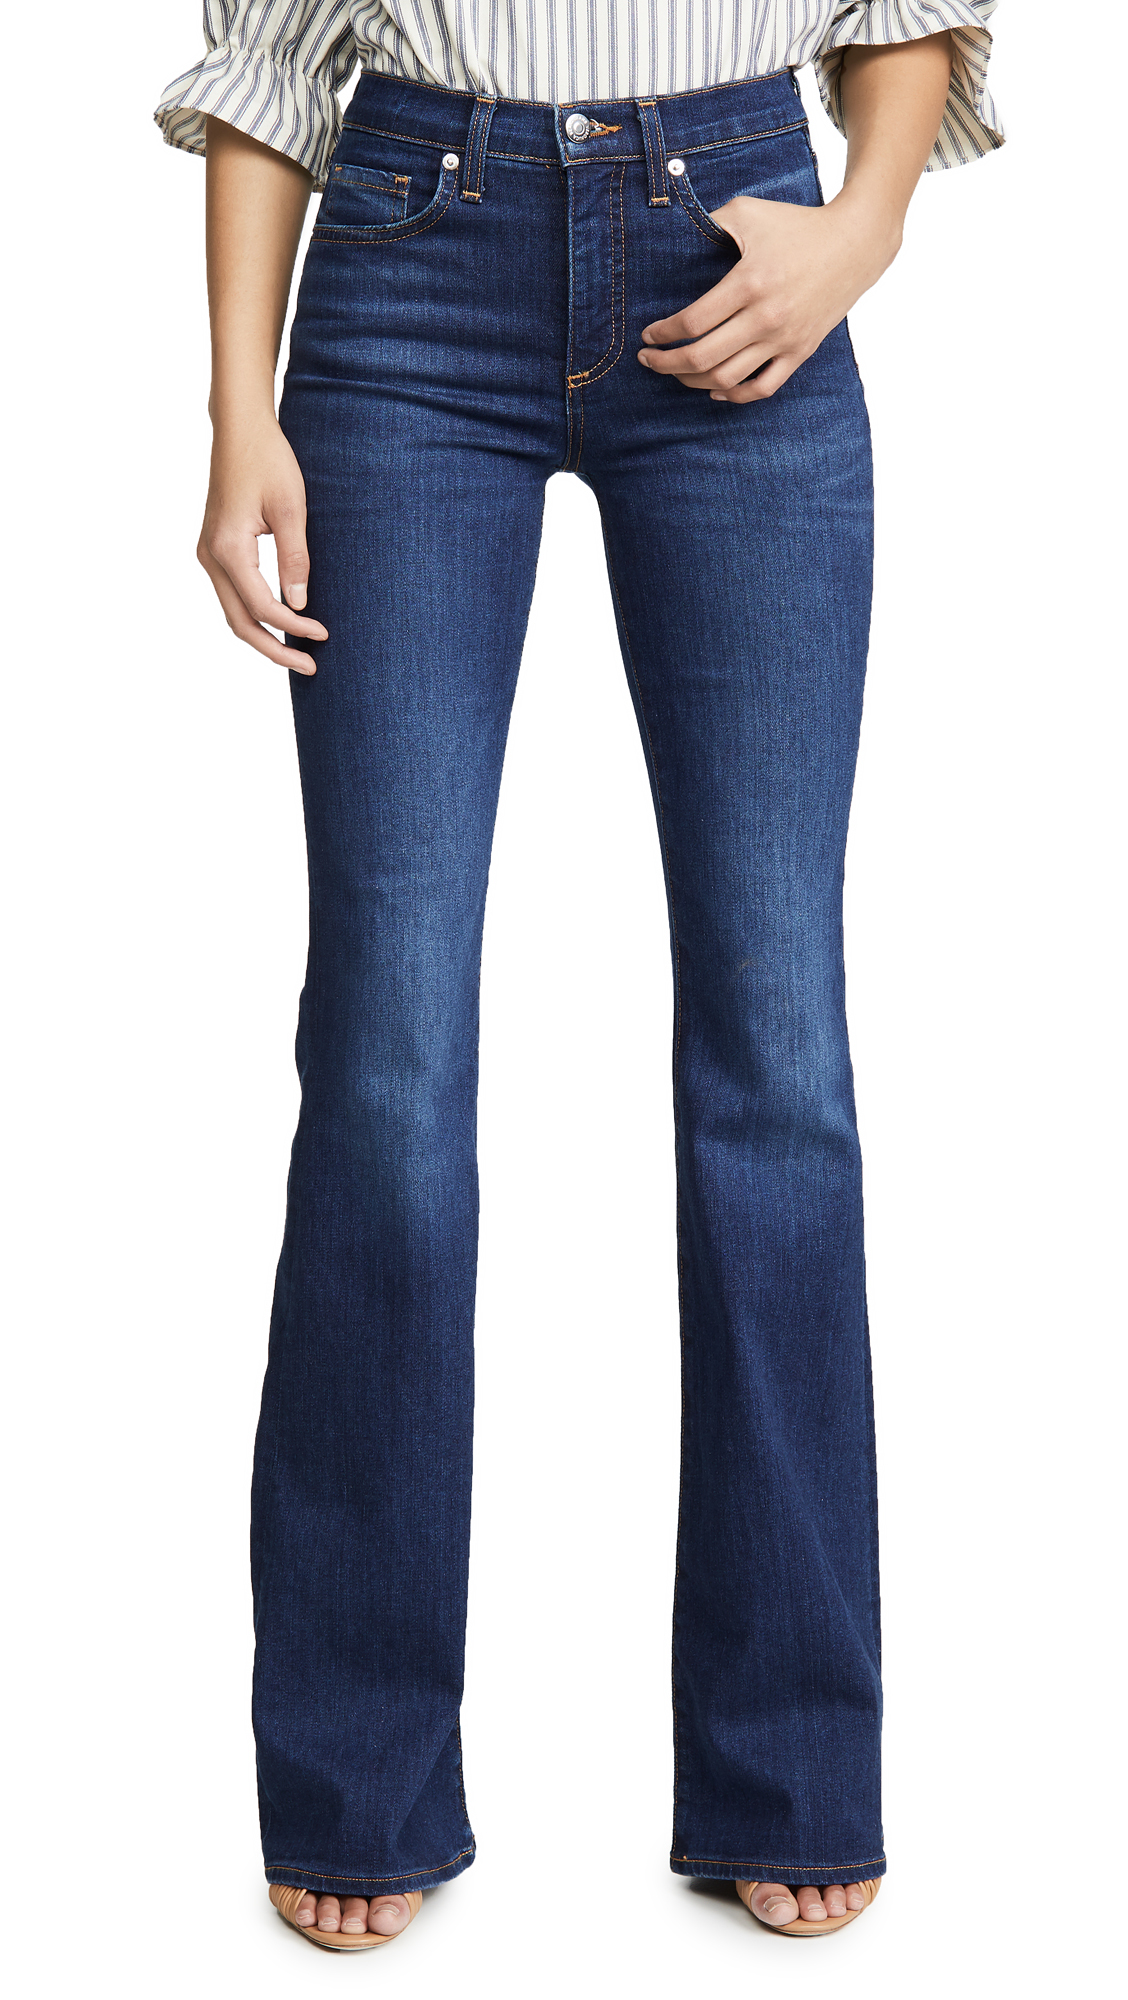 Buy Veronica Beard Jean online - photo of Veronica Beard Jean Beverly High Rise Skinny Flare Jeans